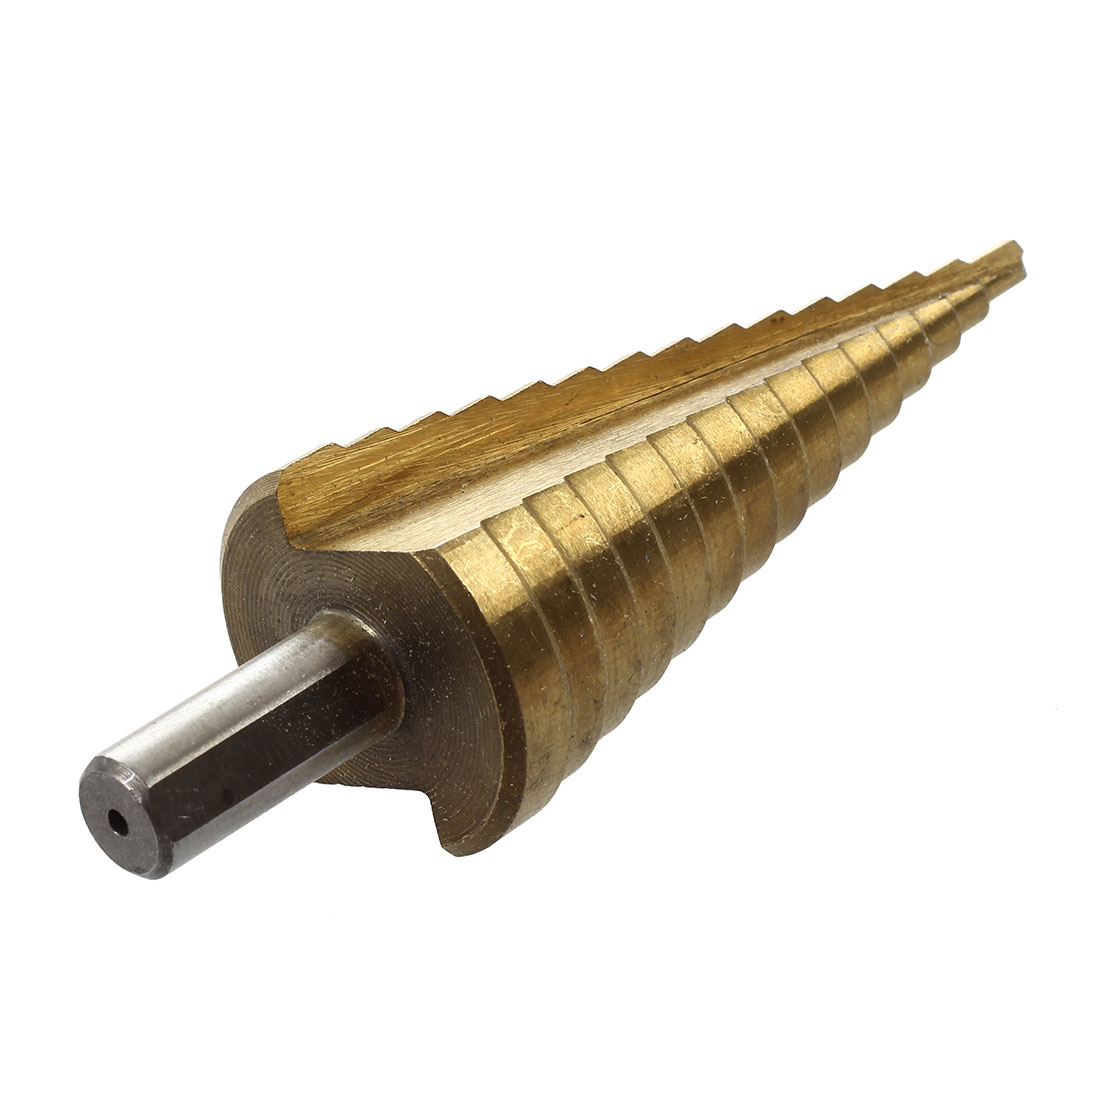 HHTL-Set of 3 Drills Cutters Floors Conical HSS steel thgs set of 3 drills cutters floors conical hss steel